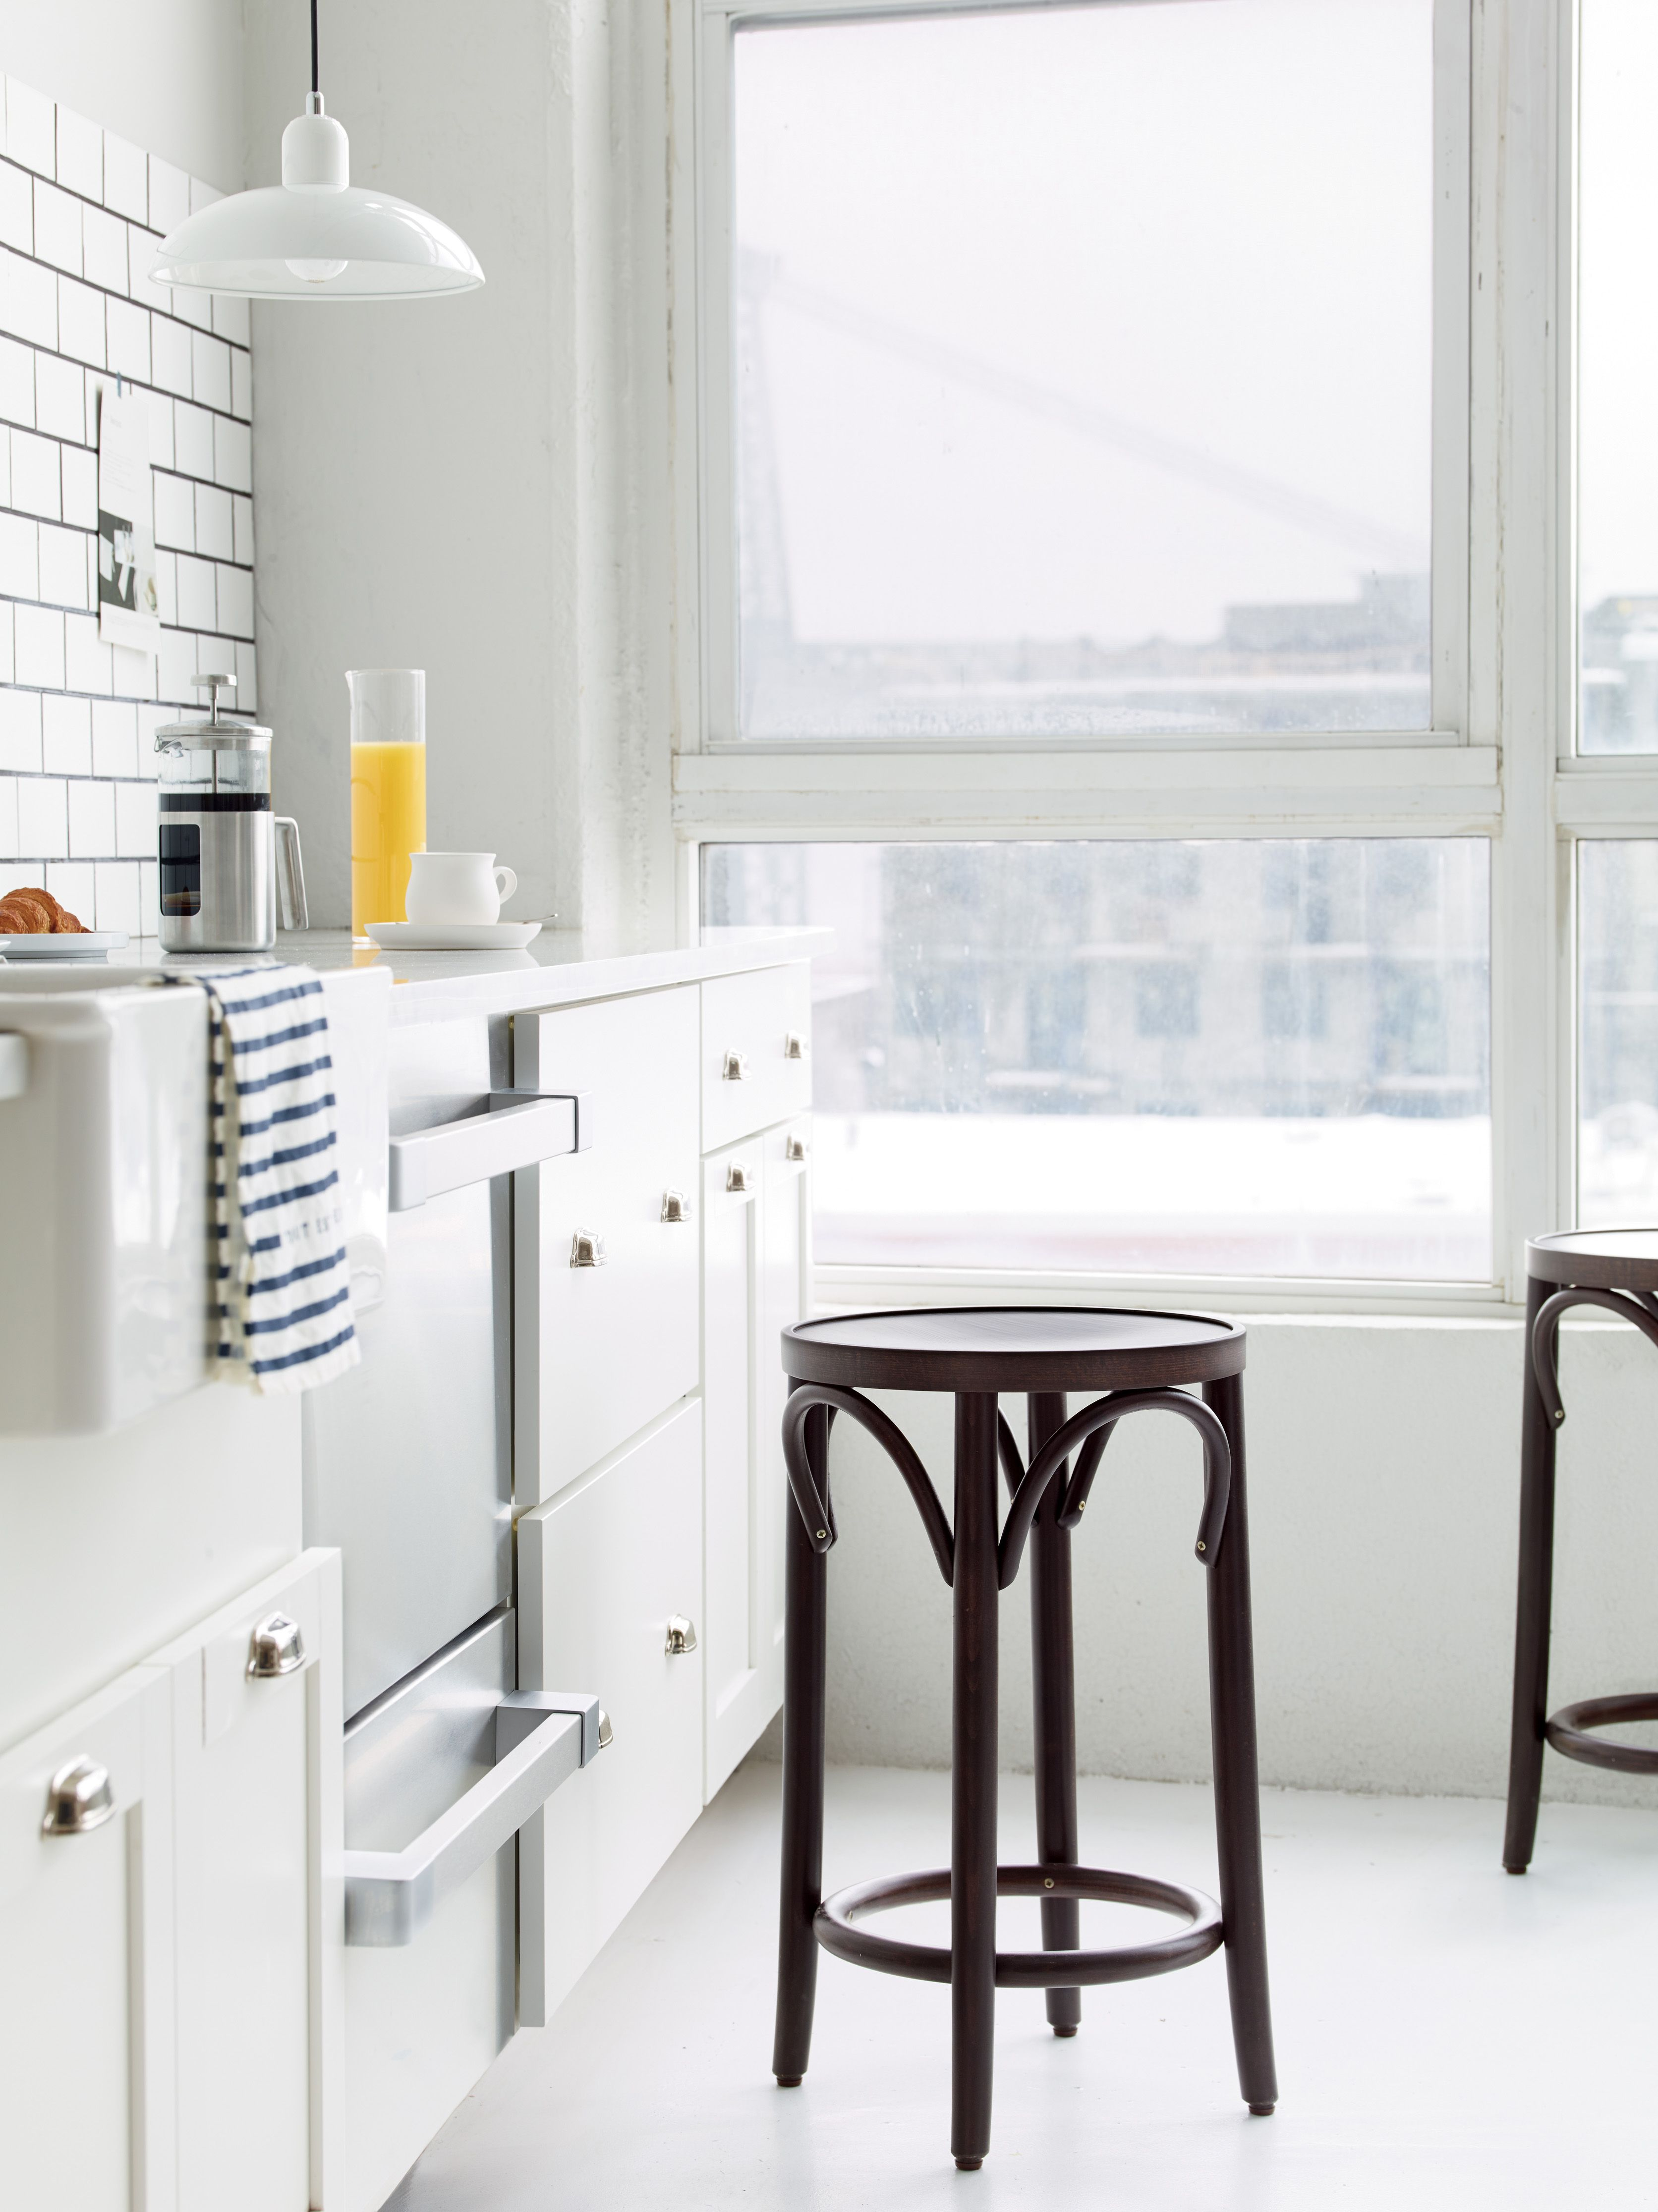 Era Backless Counter Stool | Stools, Spaces and Kitchens